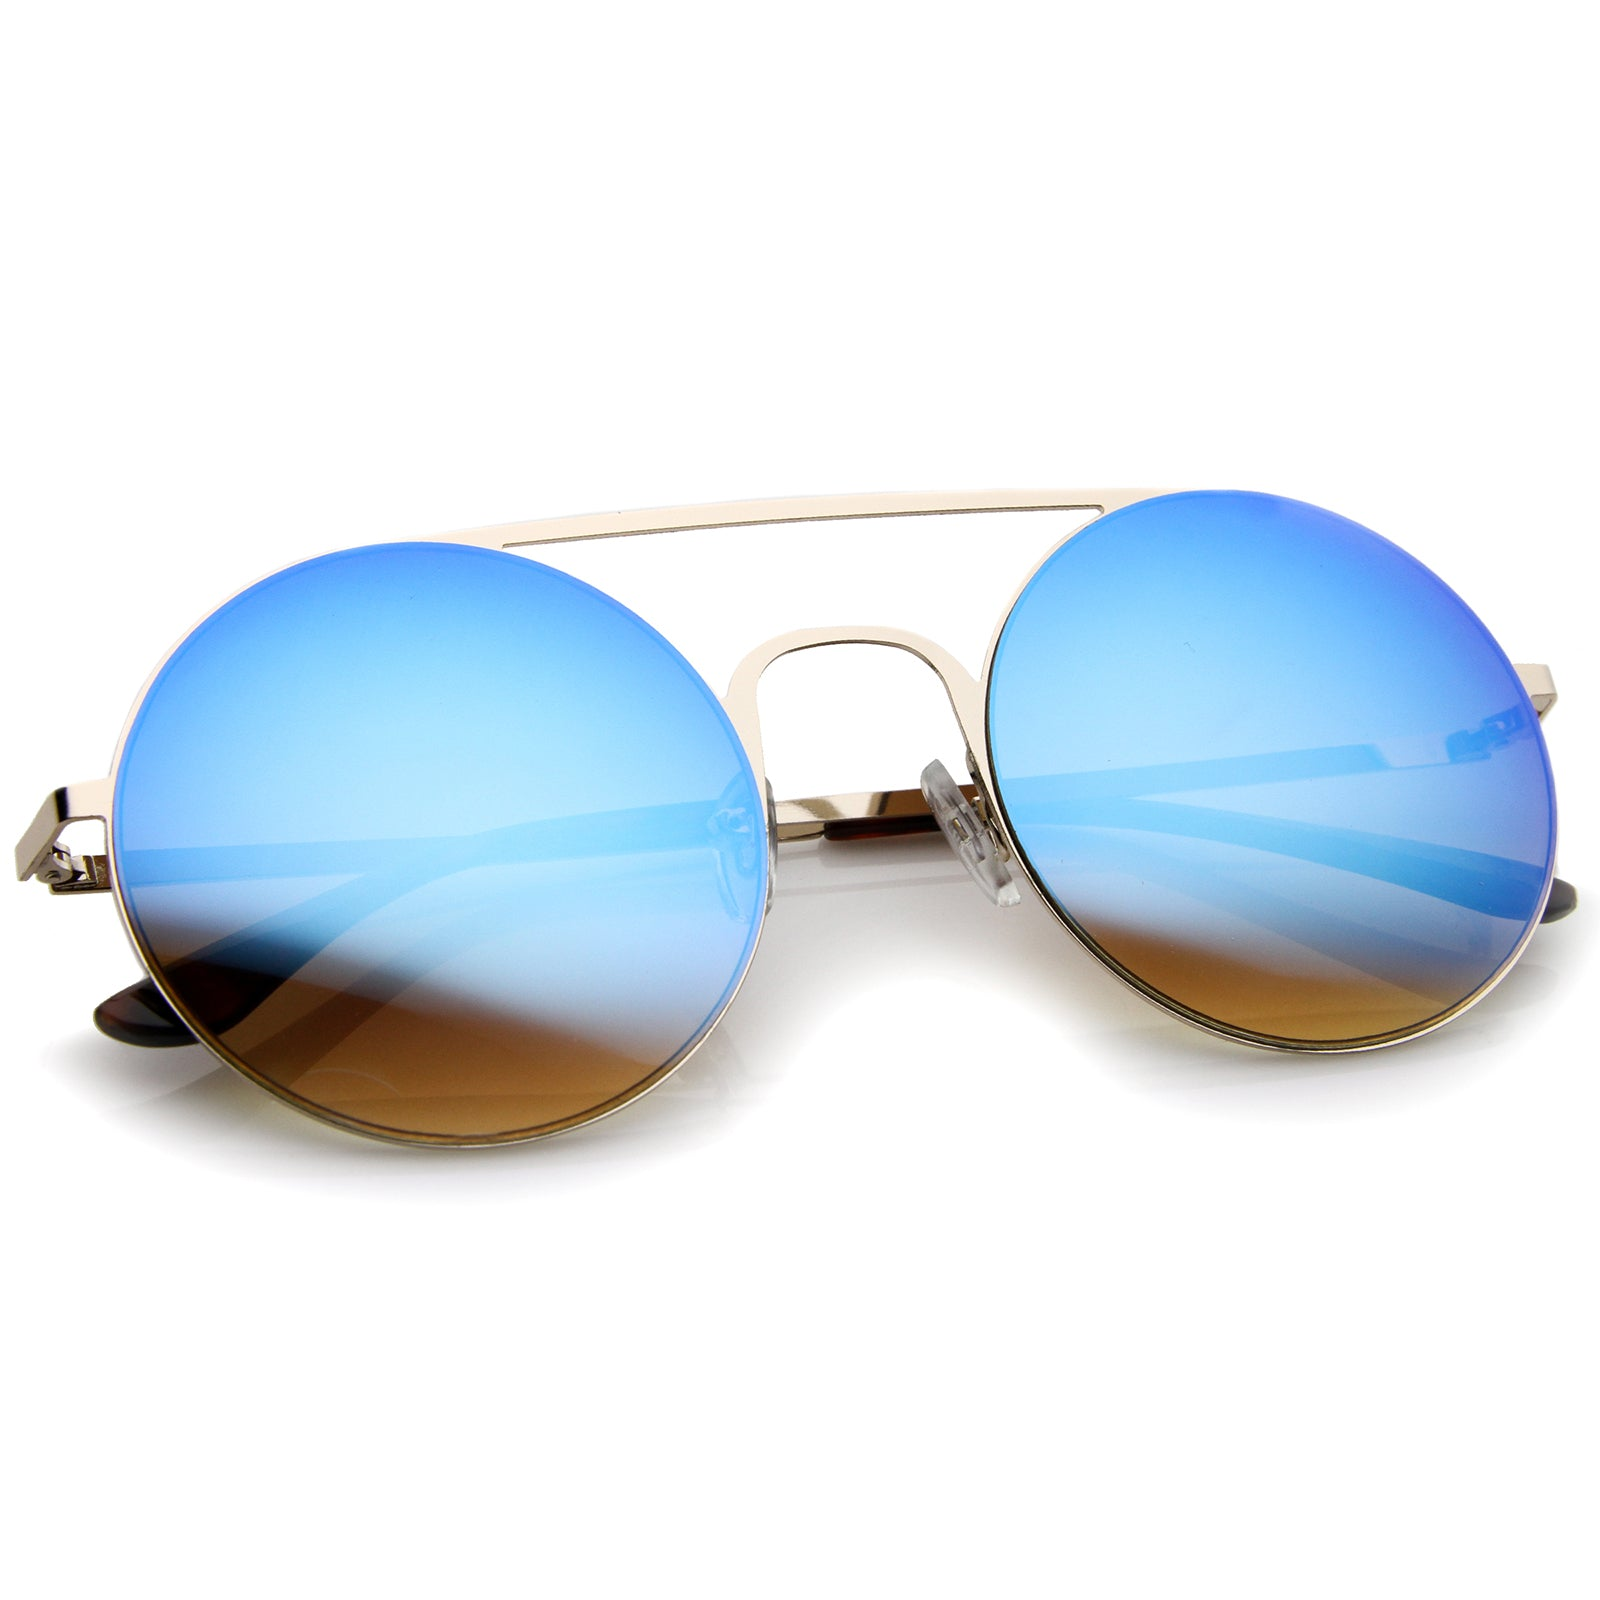 Modern Slim Double Nose Bridge Colored Mirror Flat Lens Round Sunglasses 53mm - sunglass.la - 4